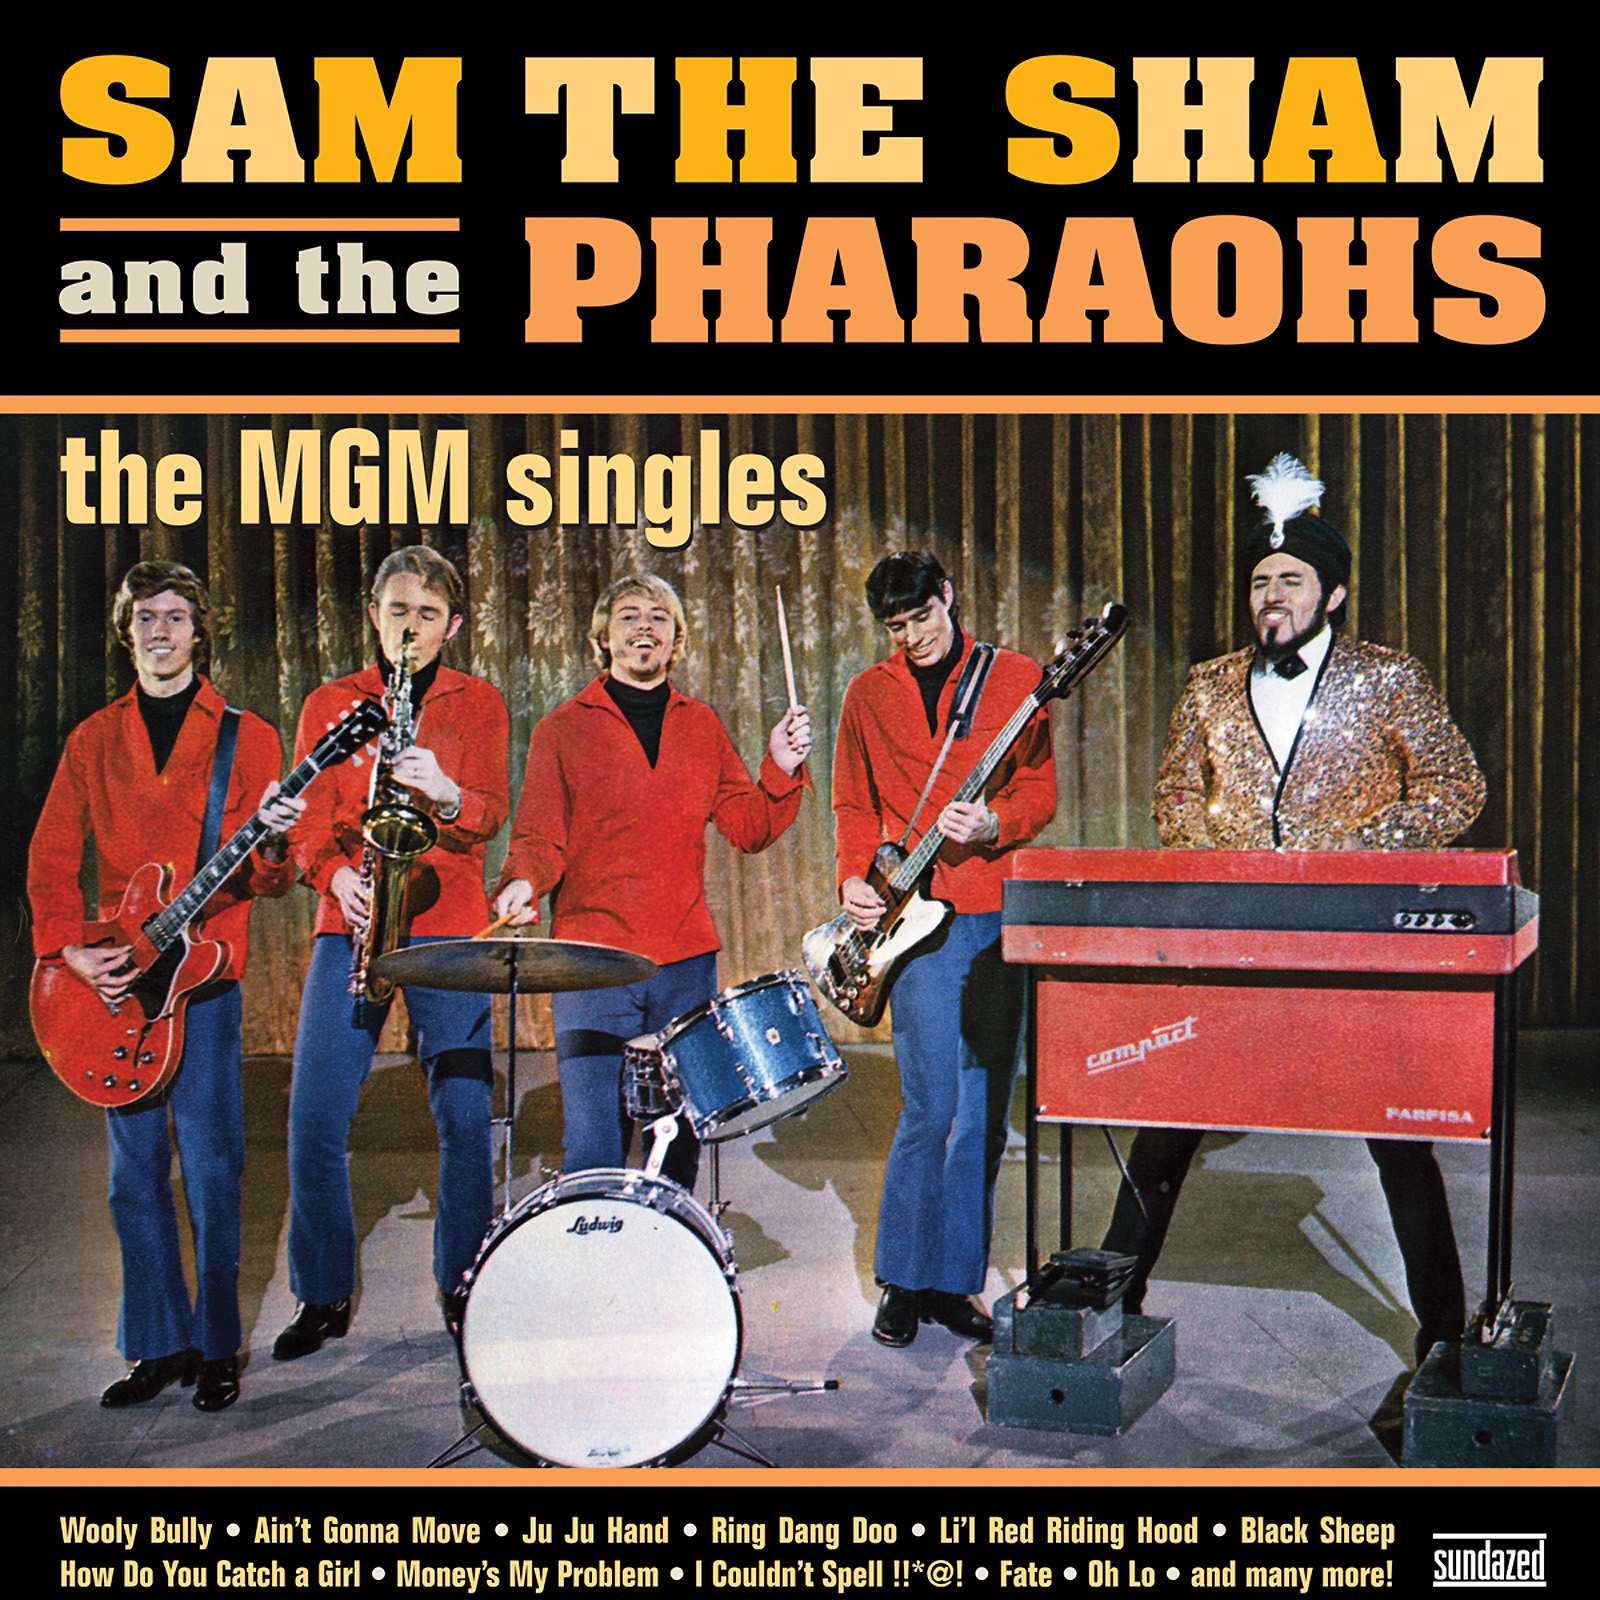 Sam the Sham and the Pharaohs - The MGM Singles CD